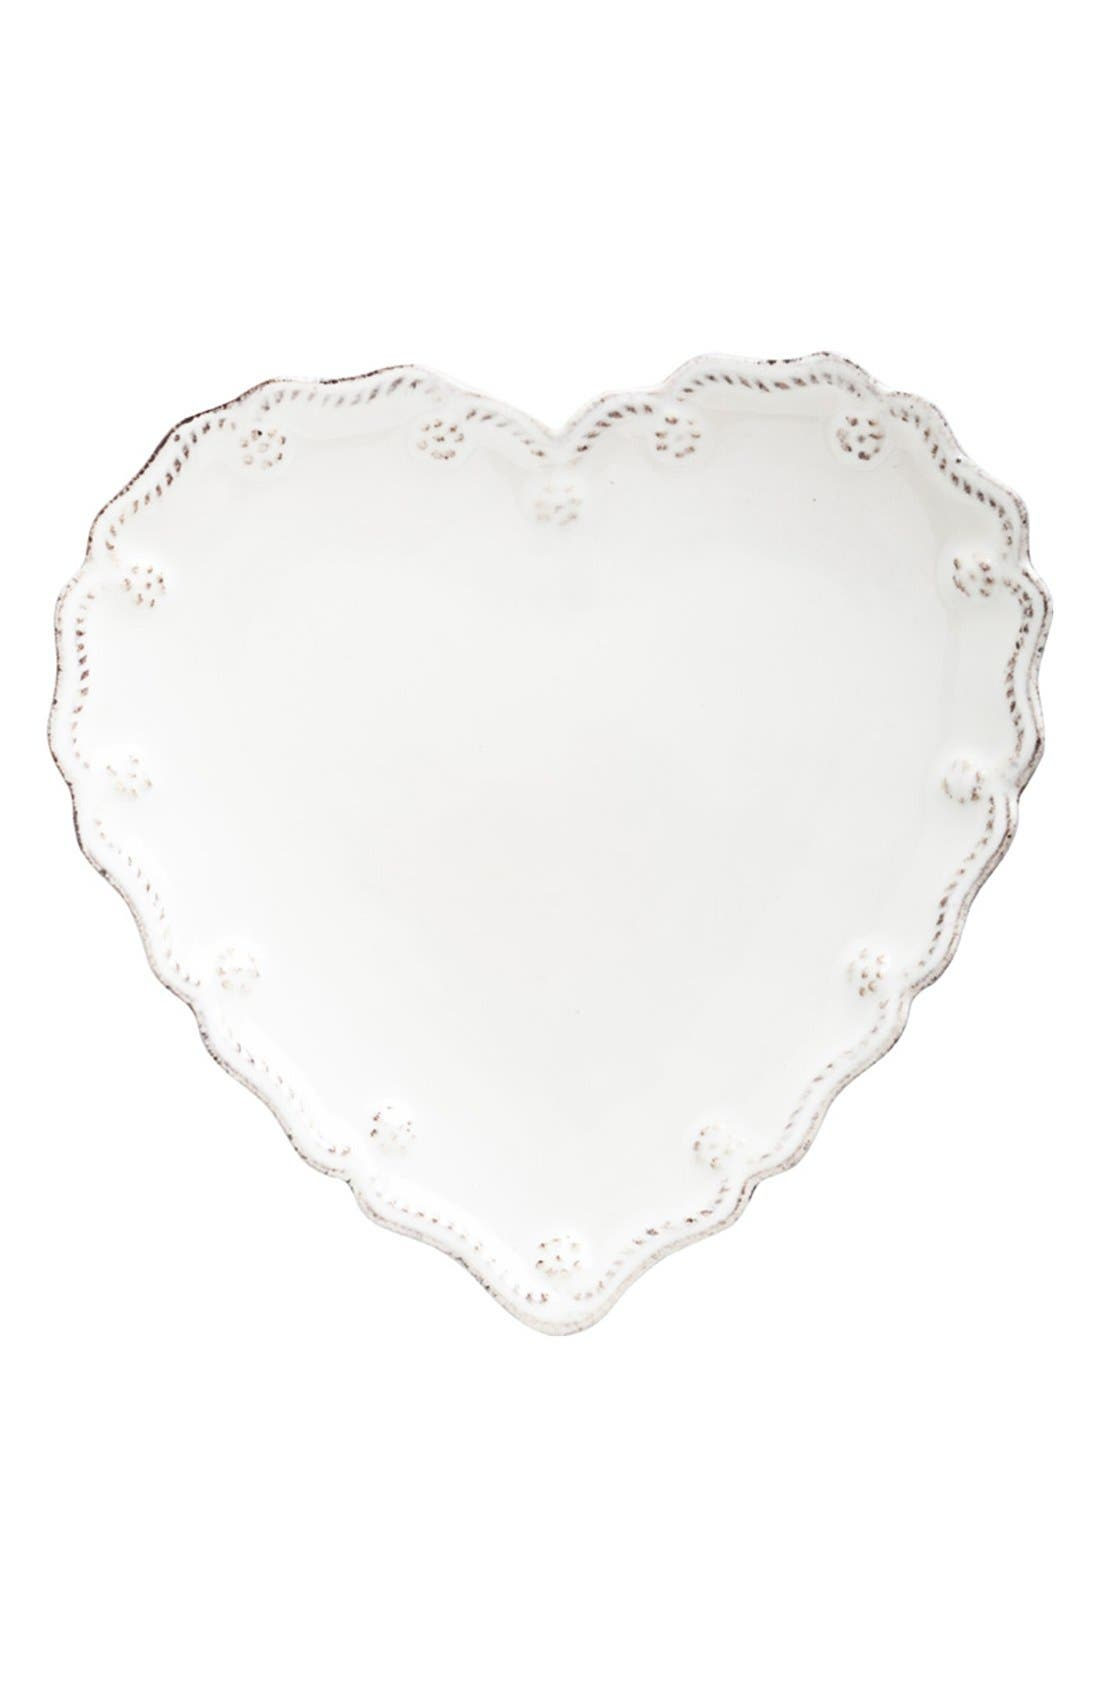 JULISKA 'Berry and Thread' Heart Shaped Cocktail Plates